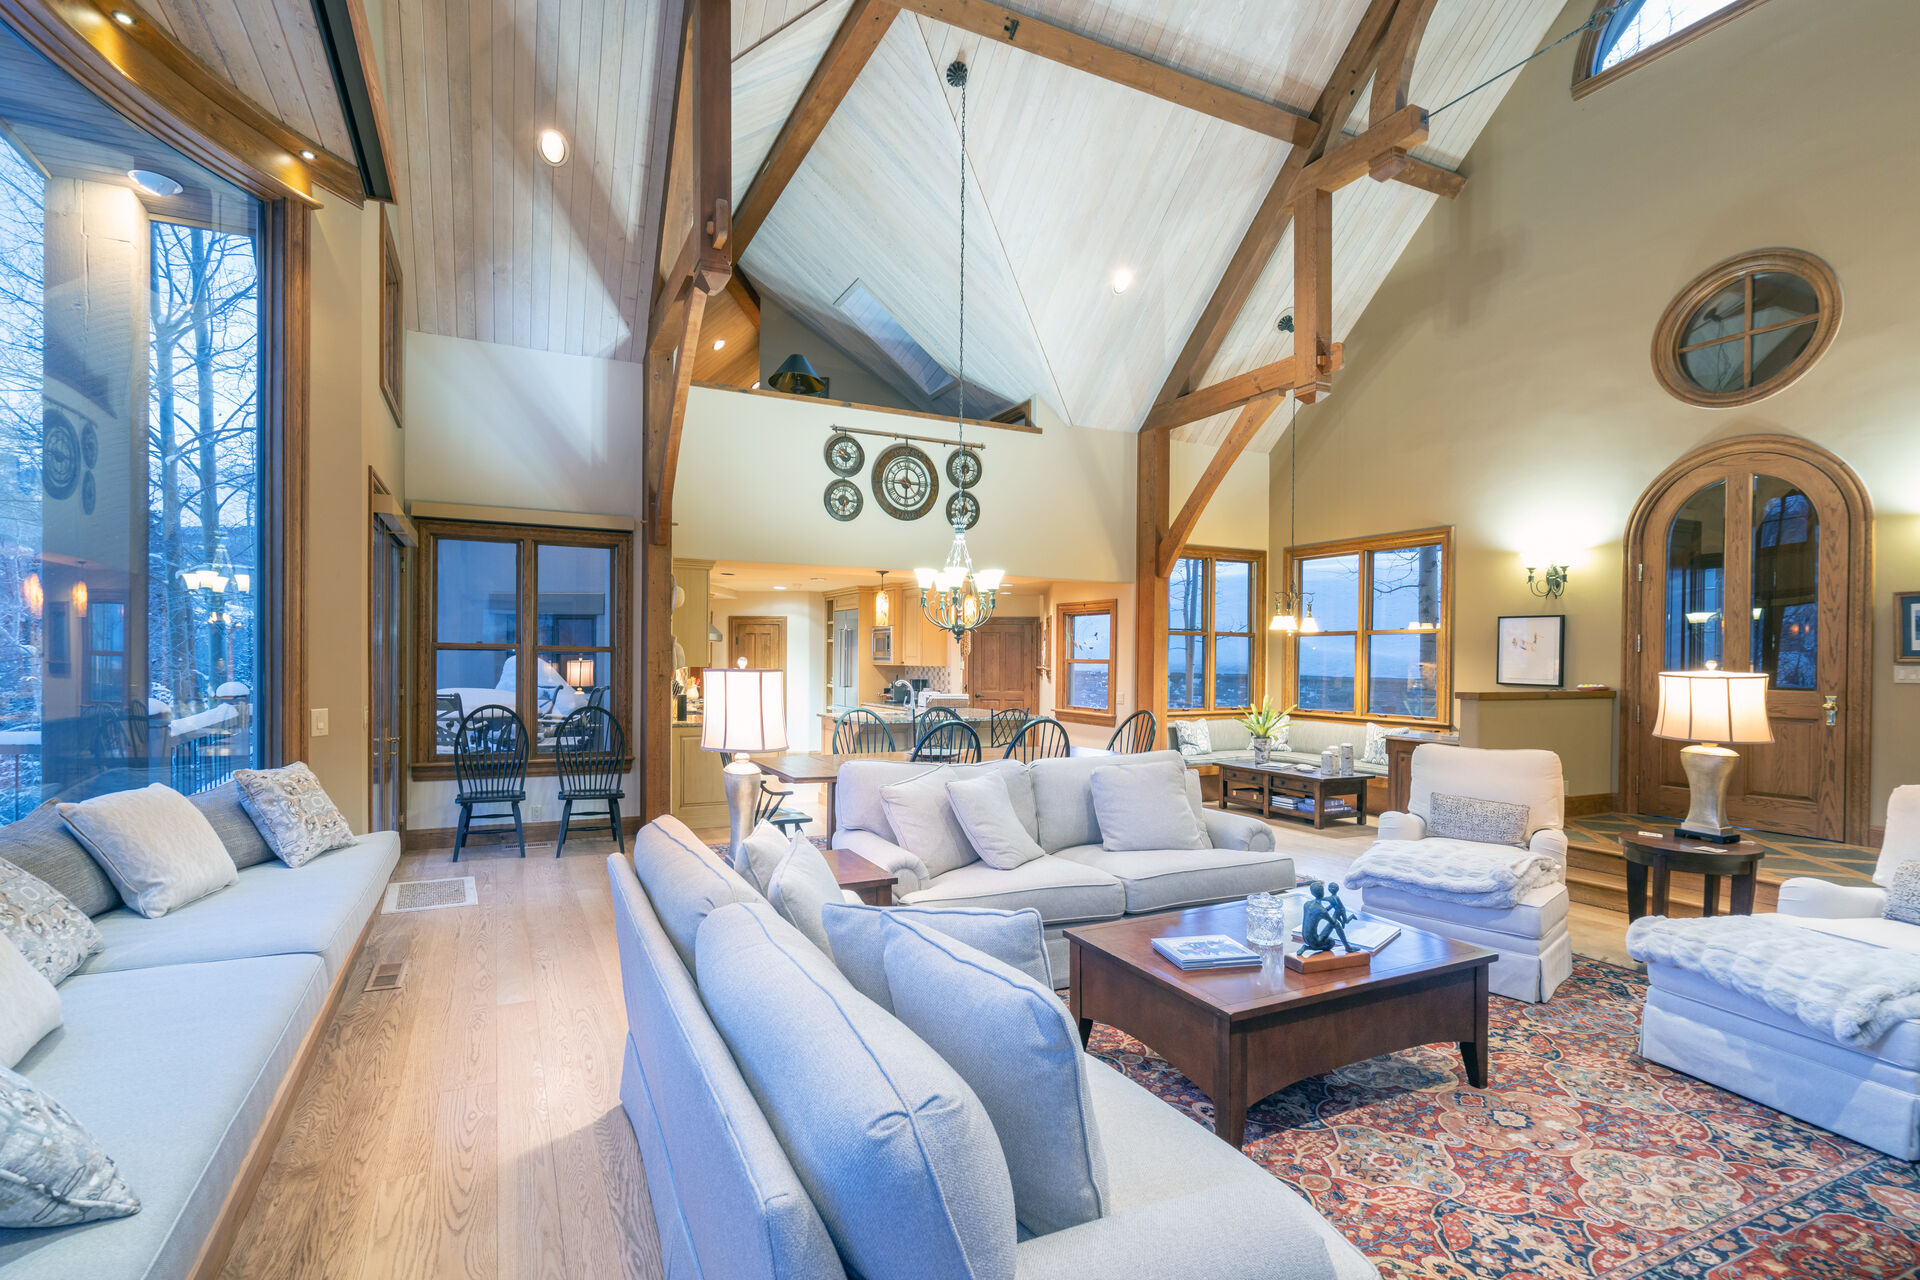 Multiple couches and armchairs in the living area of this Telluride golf rental, with a coffee table in the center.